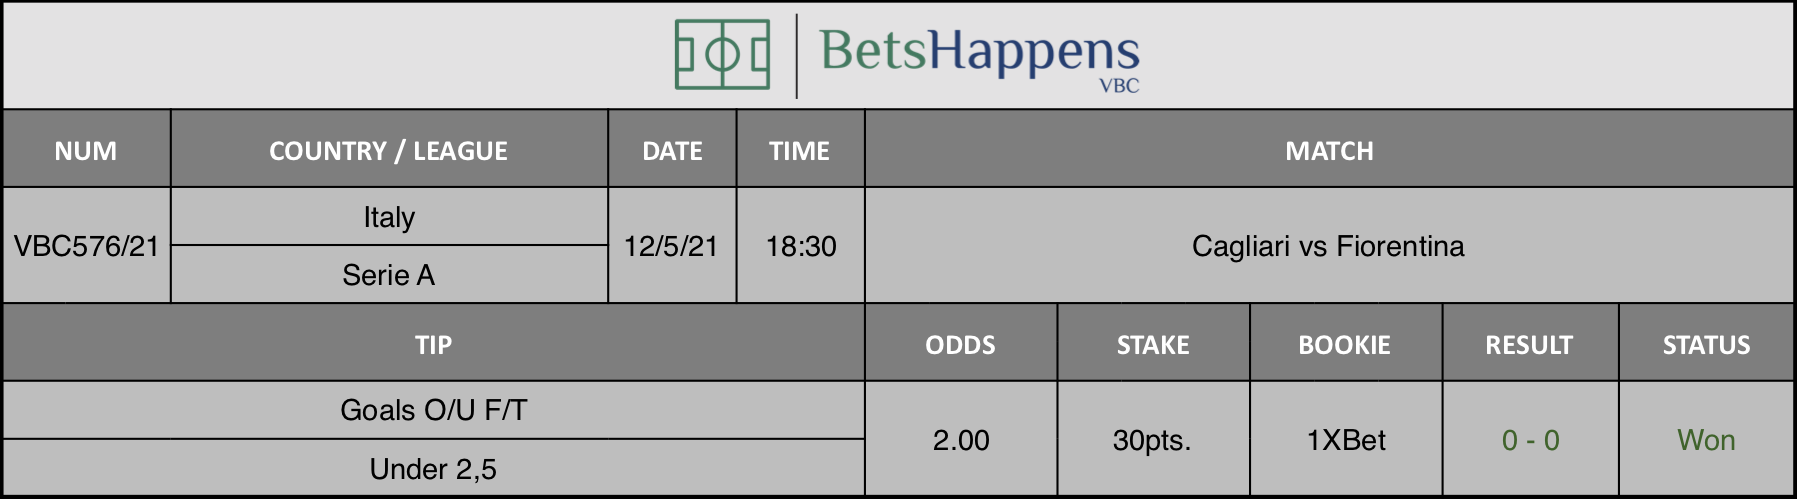 Results of our tip for the Cagliari vs Fiorentina match where Goals O/U F/T Under 2,5 is recommended.